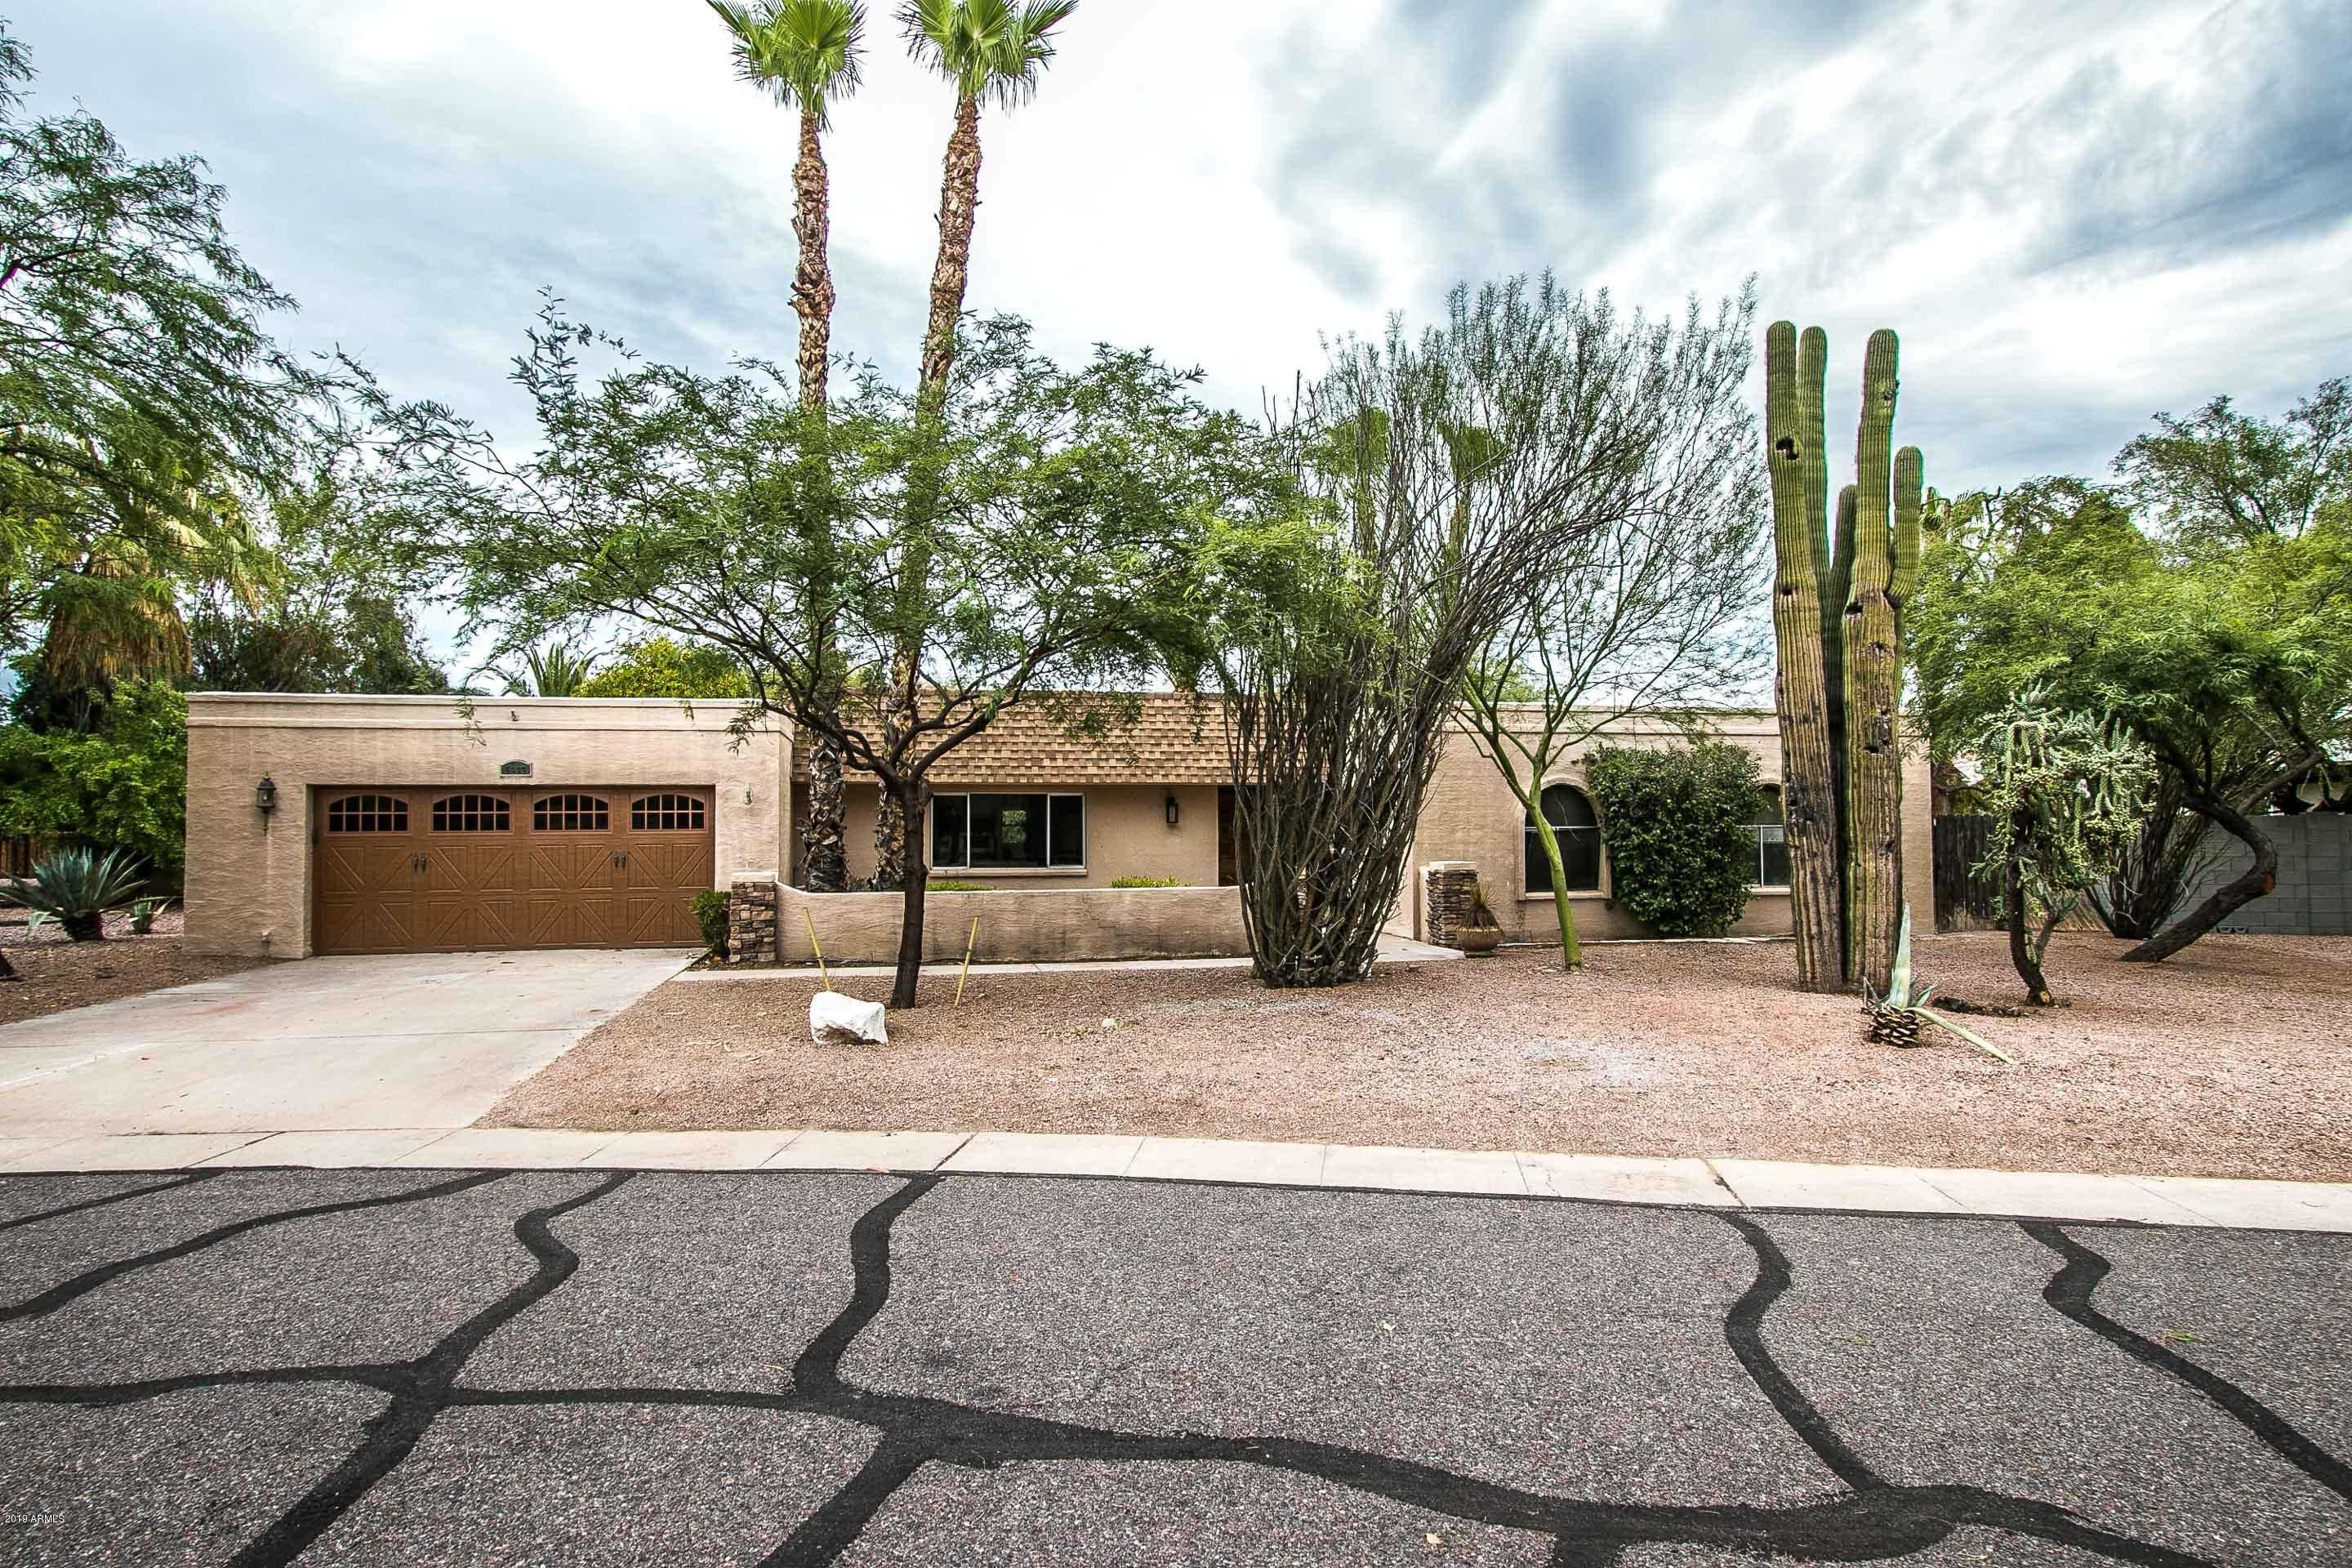 $825,000 - 3Br/2Ba - Home for Sale in Country Estates 2a, Paradise Valley